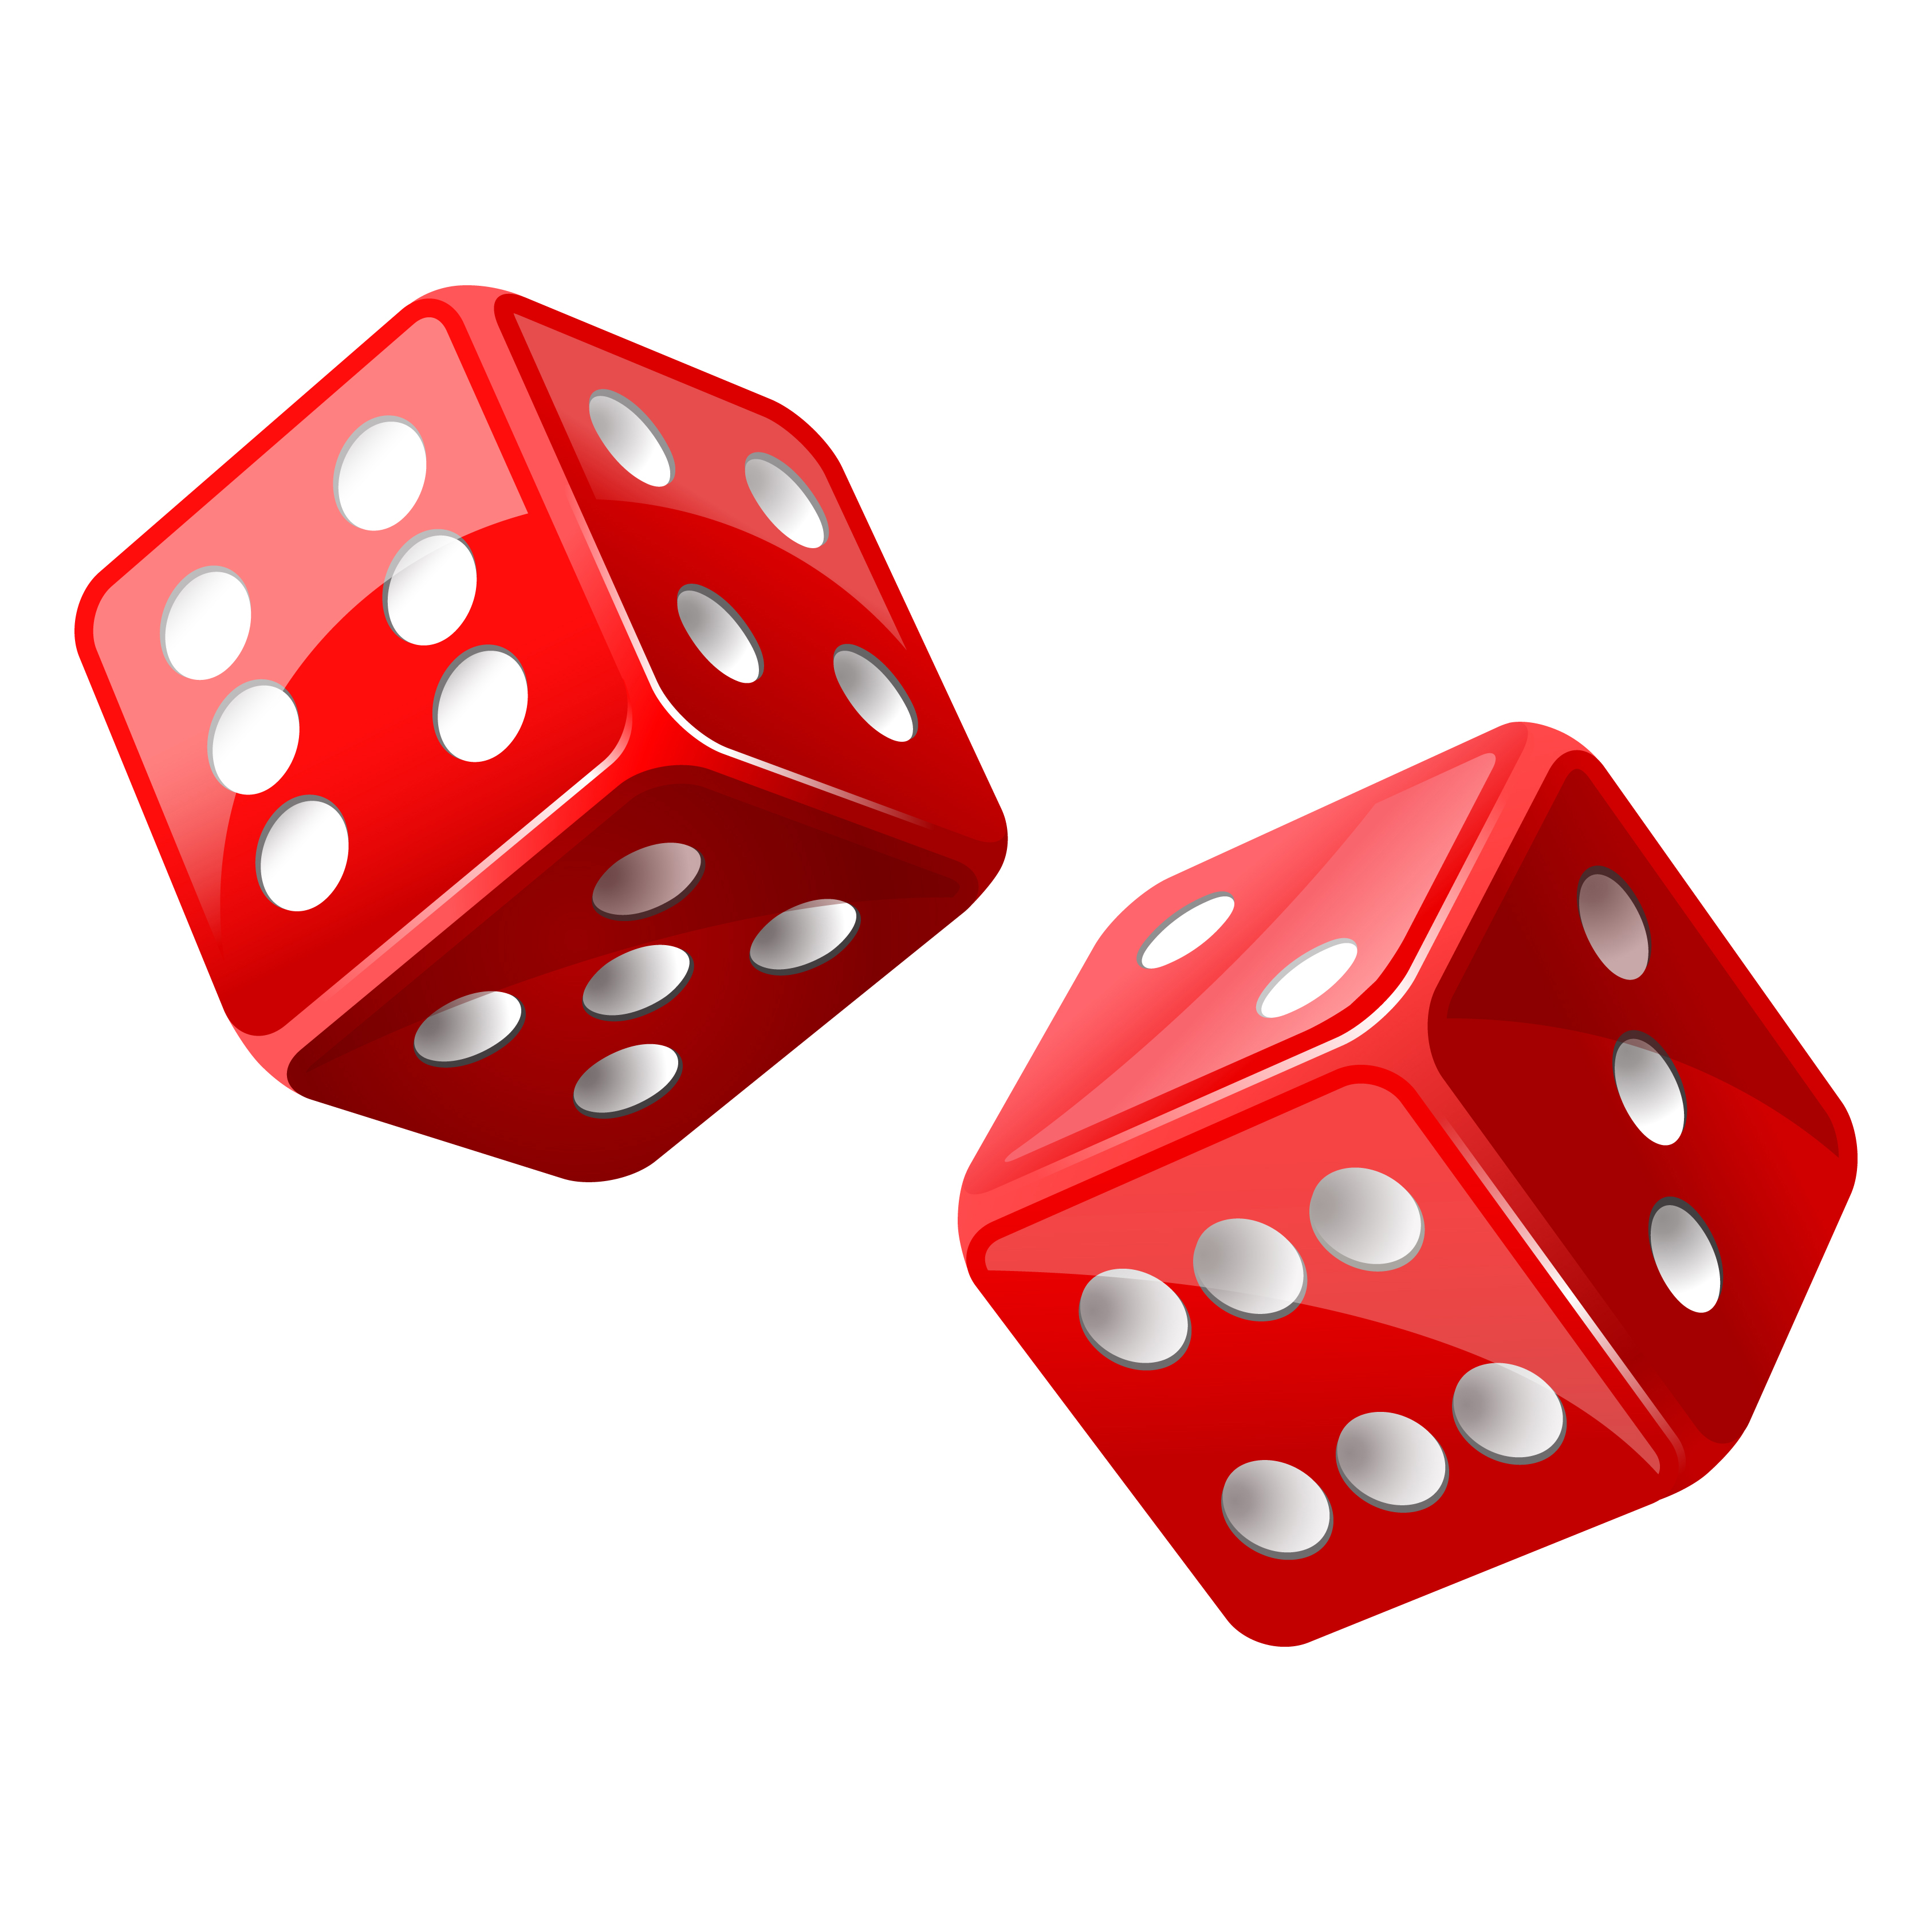 Red Dice Png - ClipArt Best | Dice | Pinterest | Illustrations